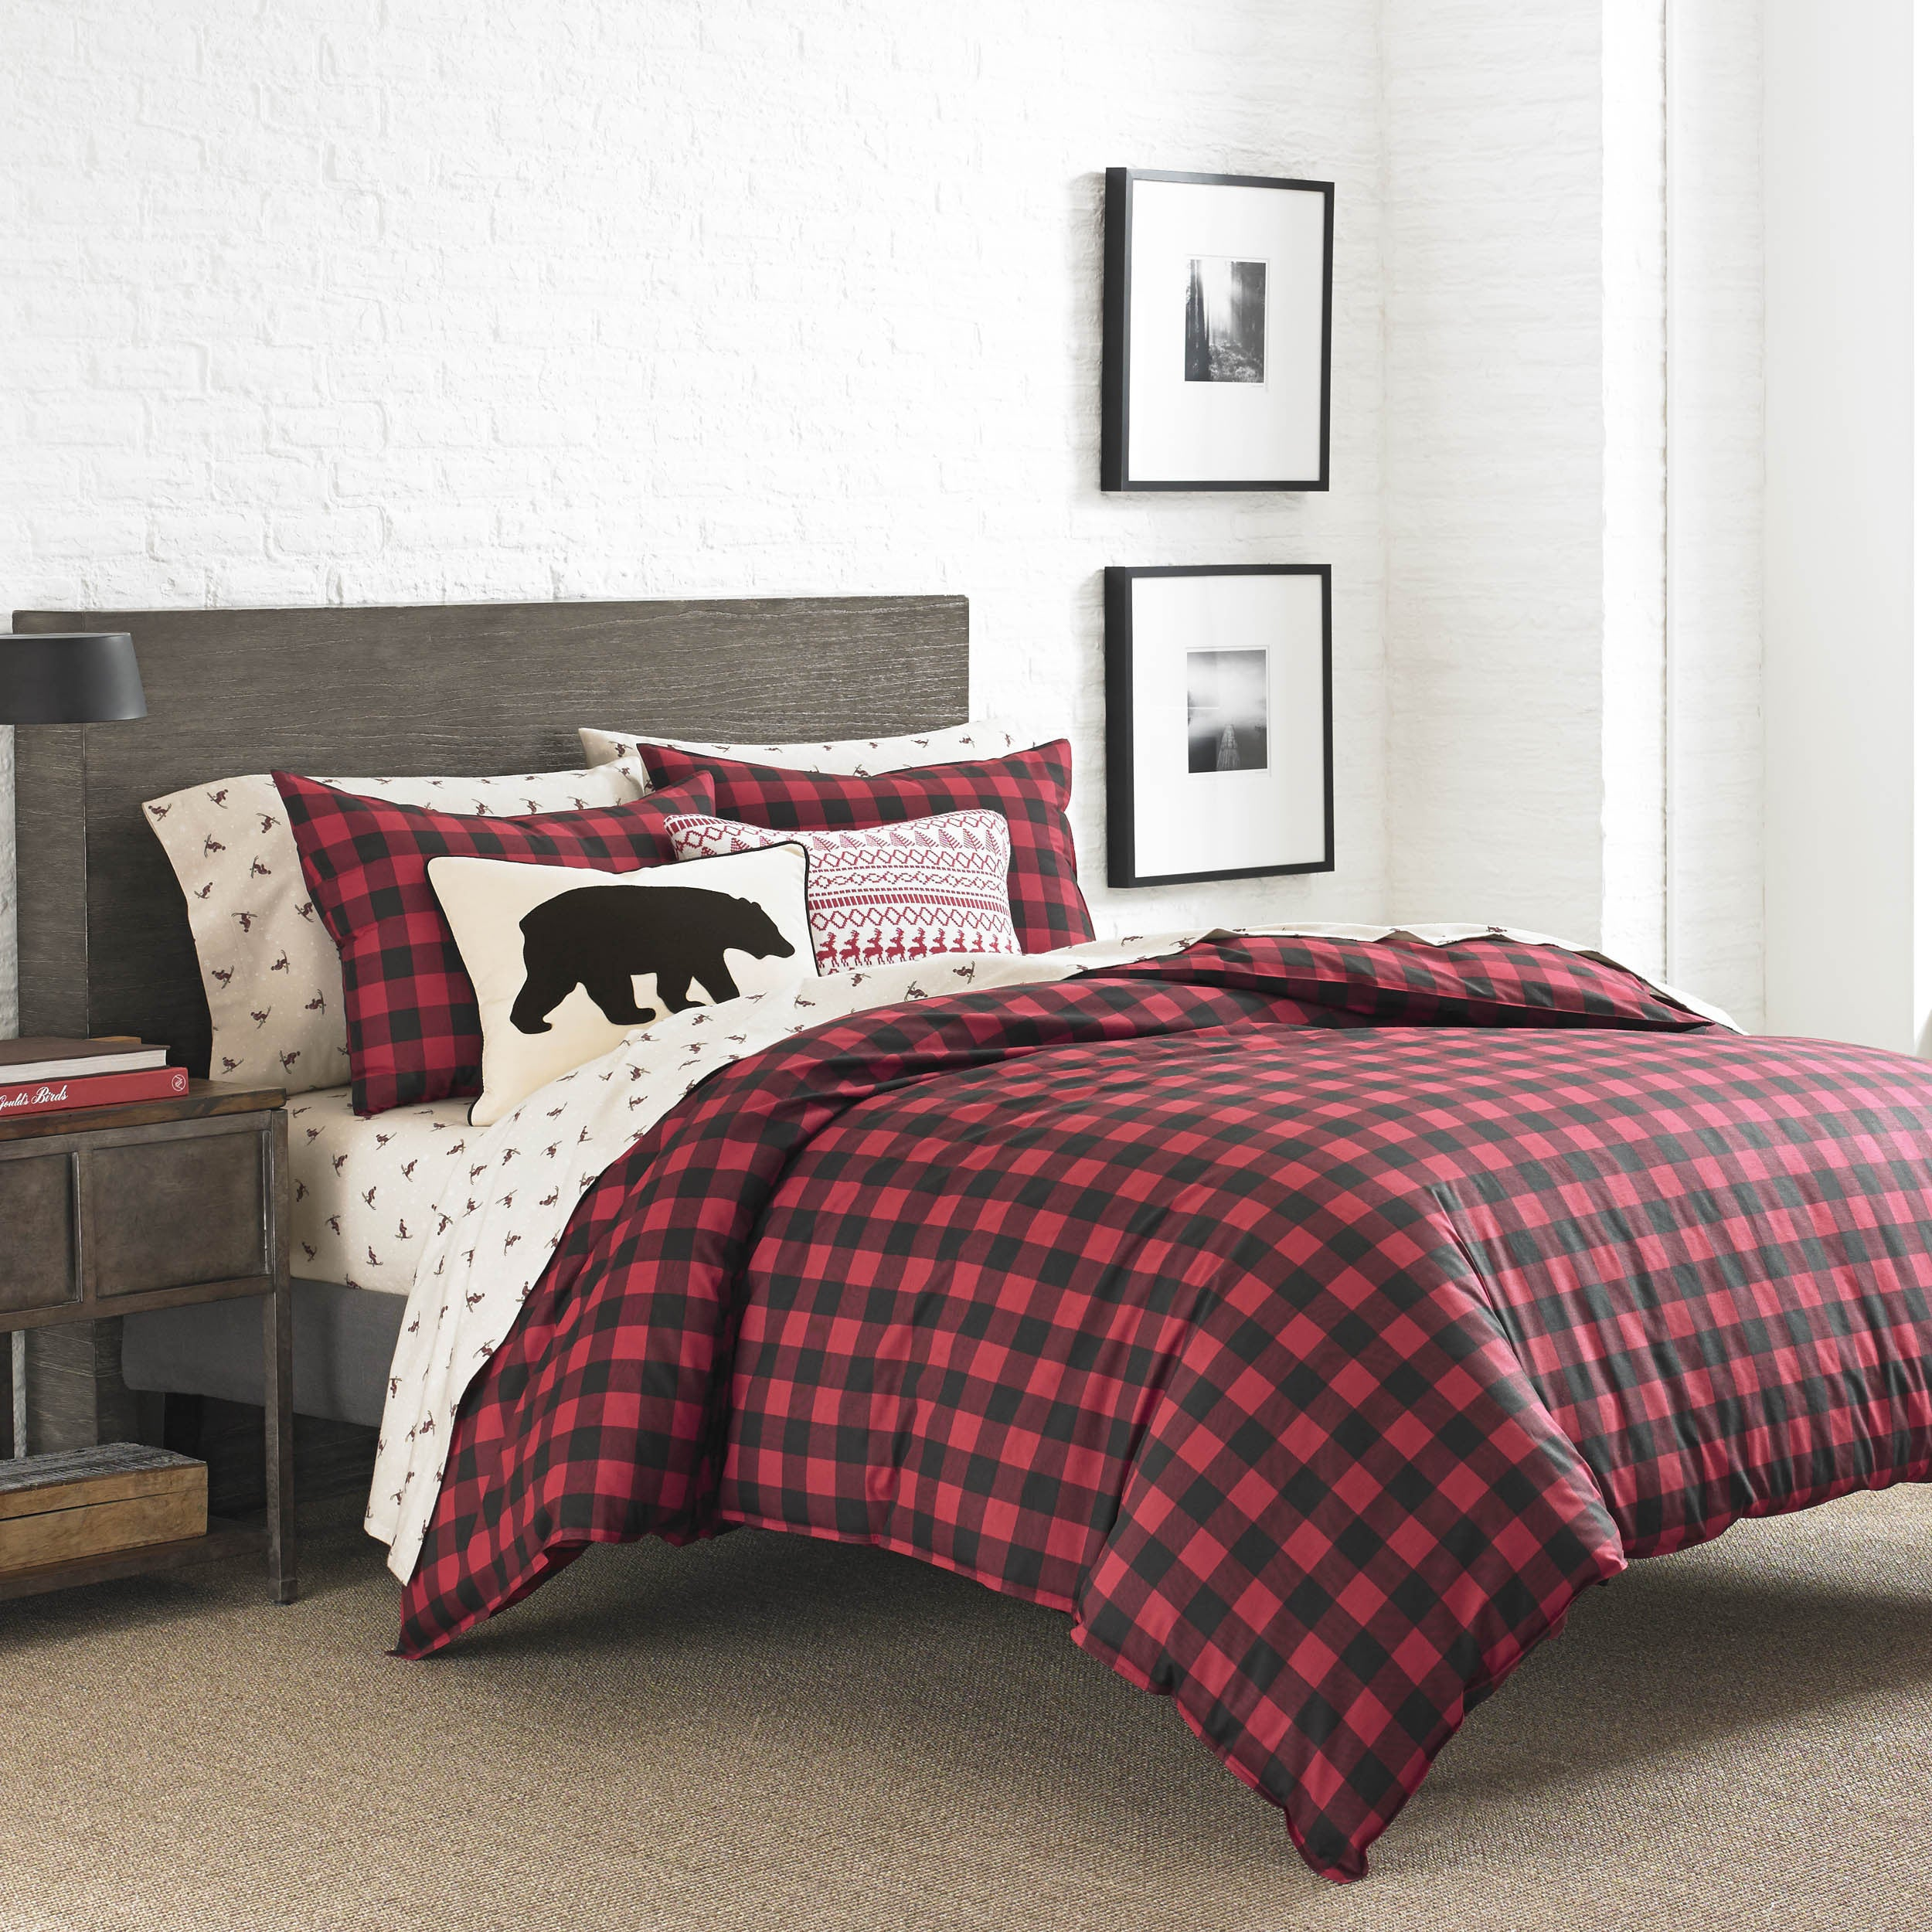 plaid wayfair set red reviews pdx bed bath eddie bauer cover willow duvet comforter